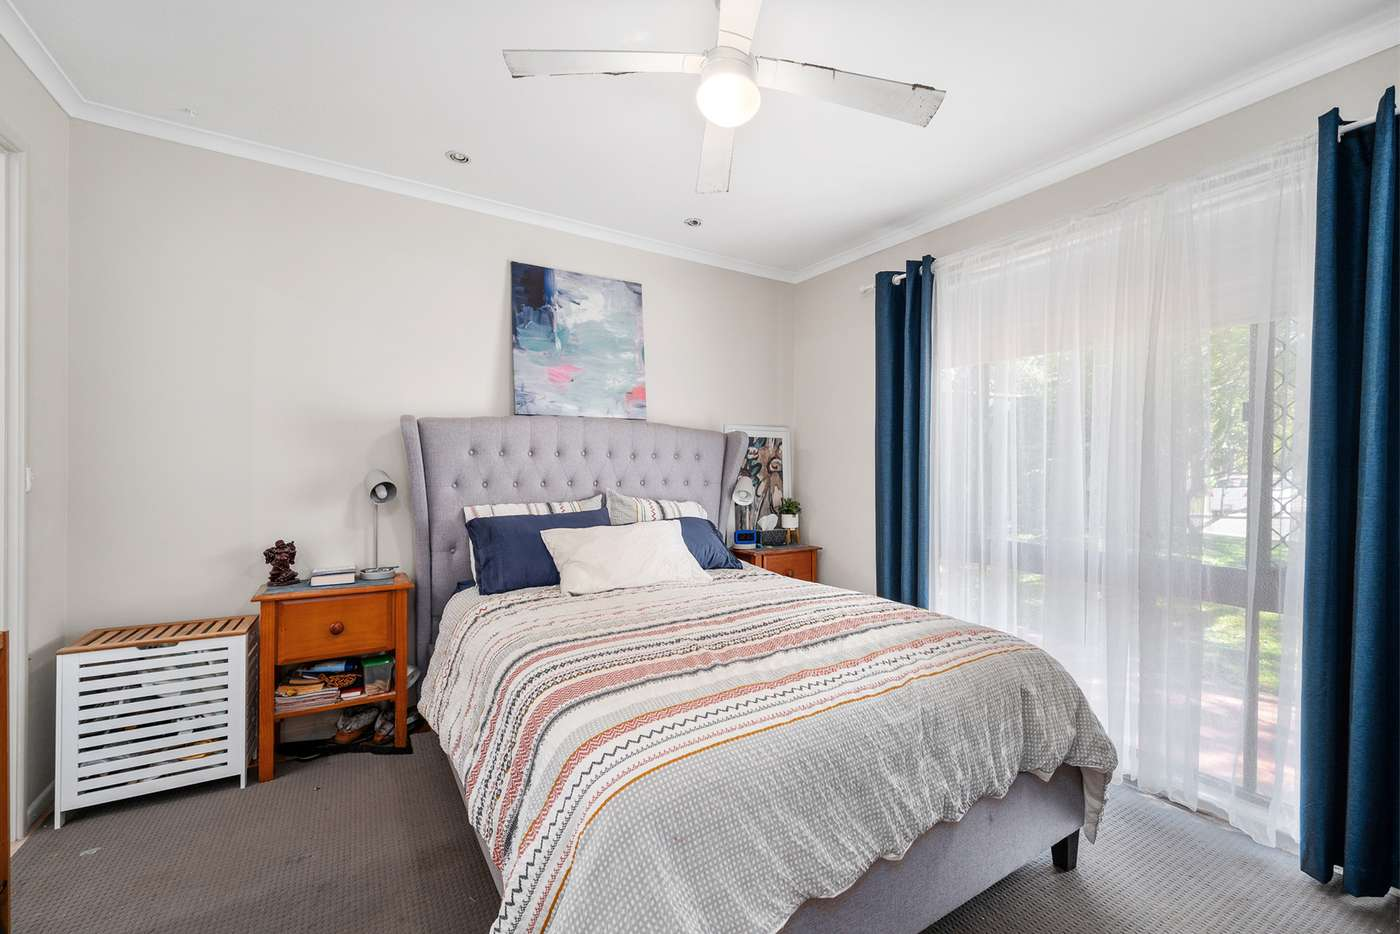 Sixth view of Homely house listing, 24 Carbon Court, Bethania QLD 4205